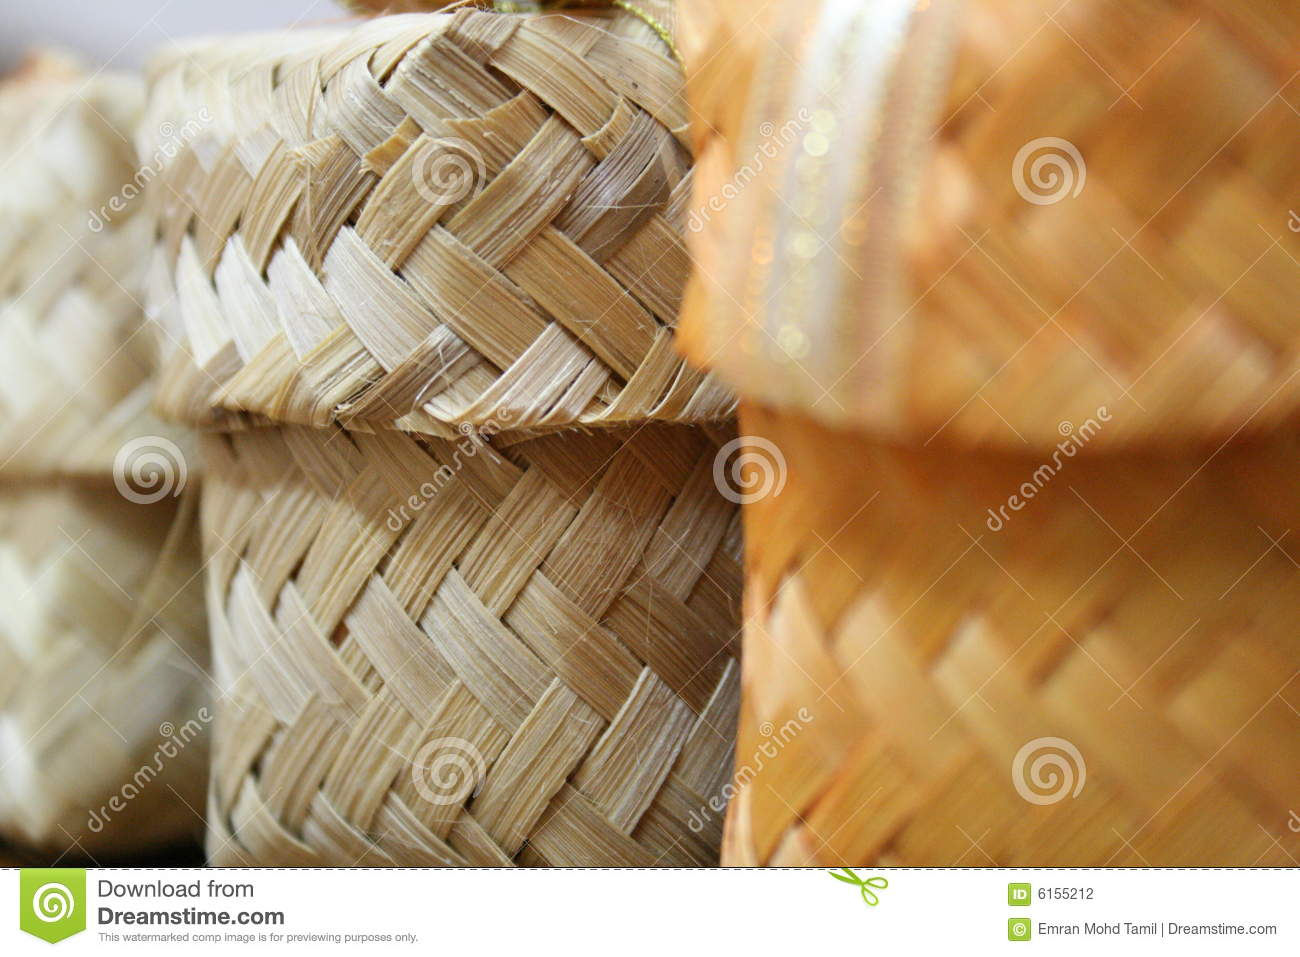 Gifts Malaysia Pictures: Malay Wedding Door Gift Stock Photo. Image Of Gifts